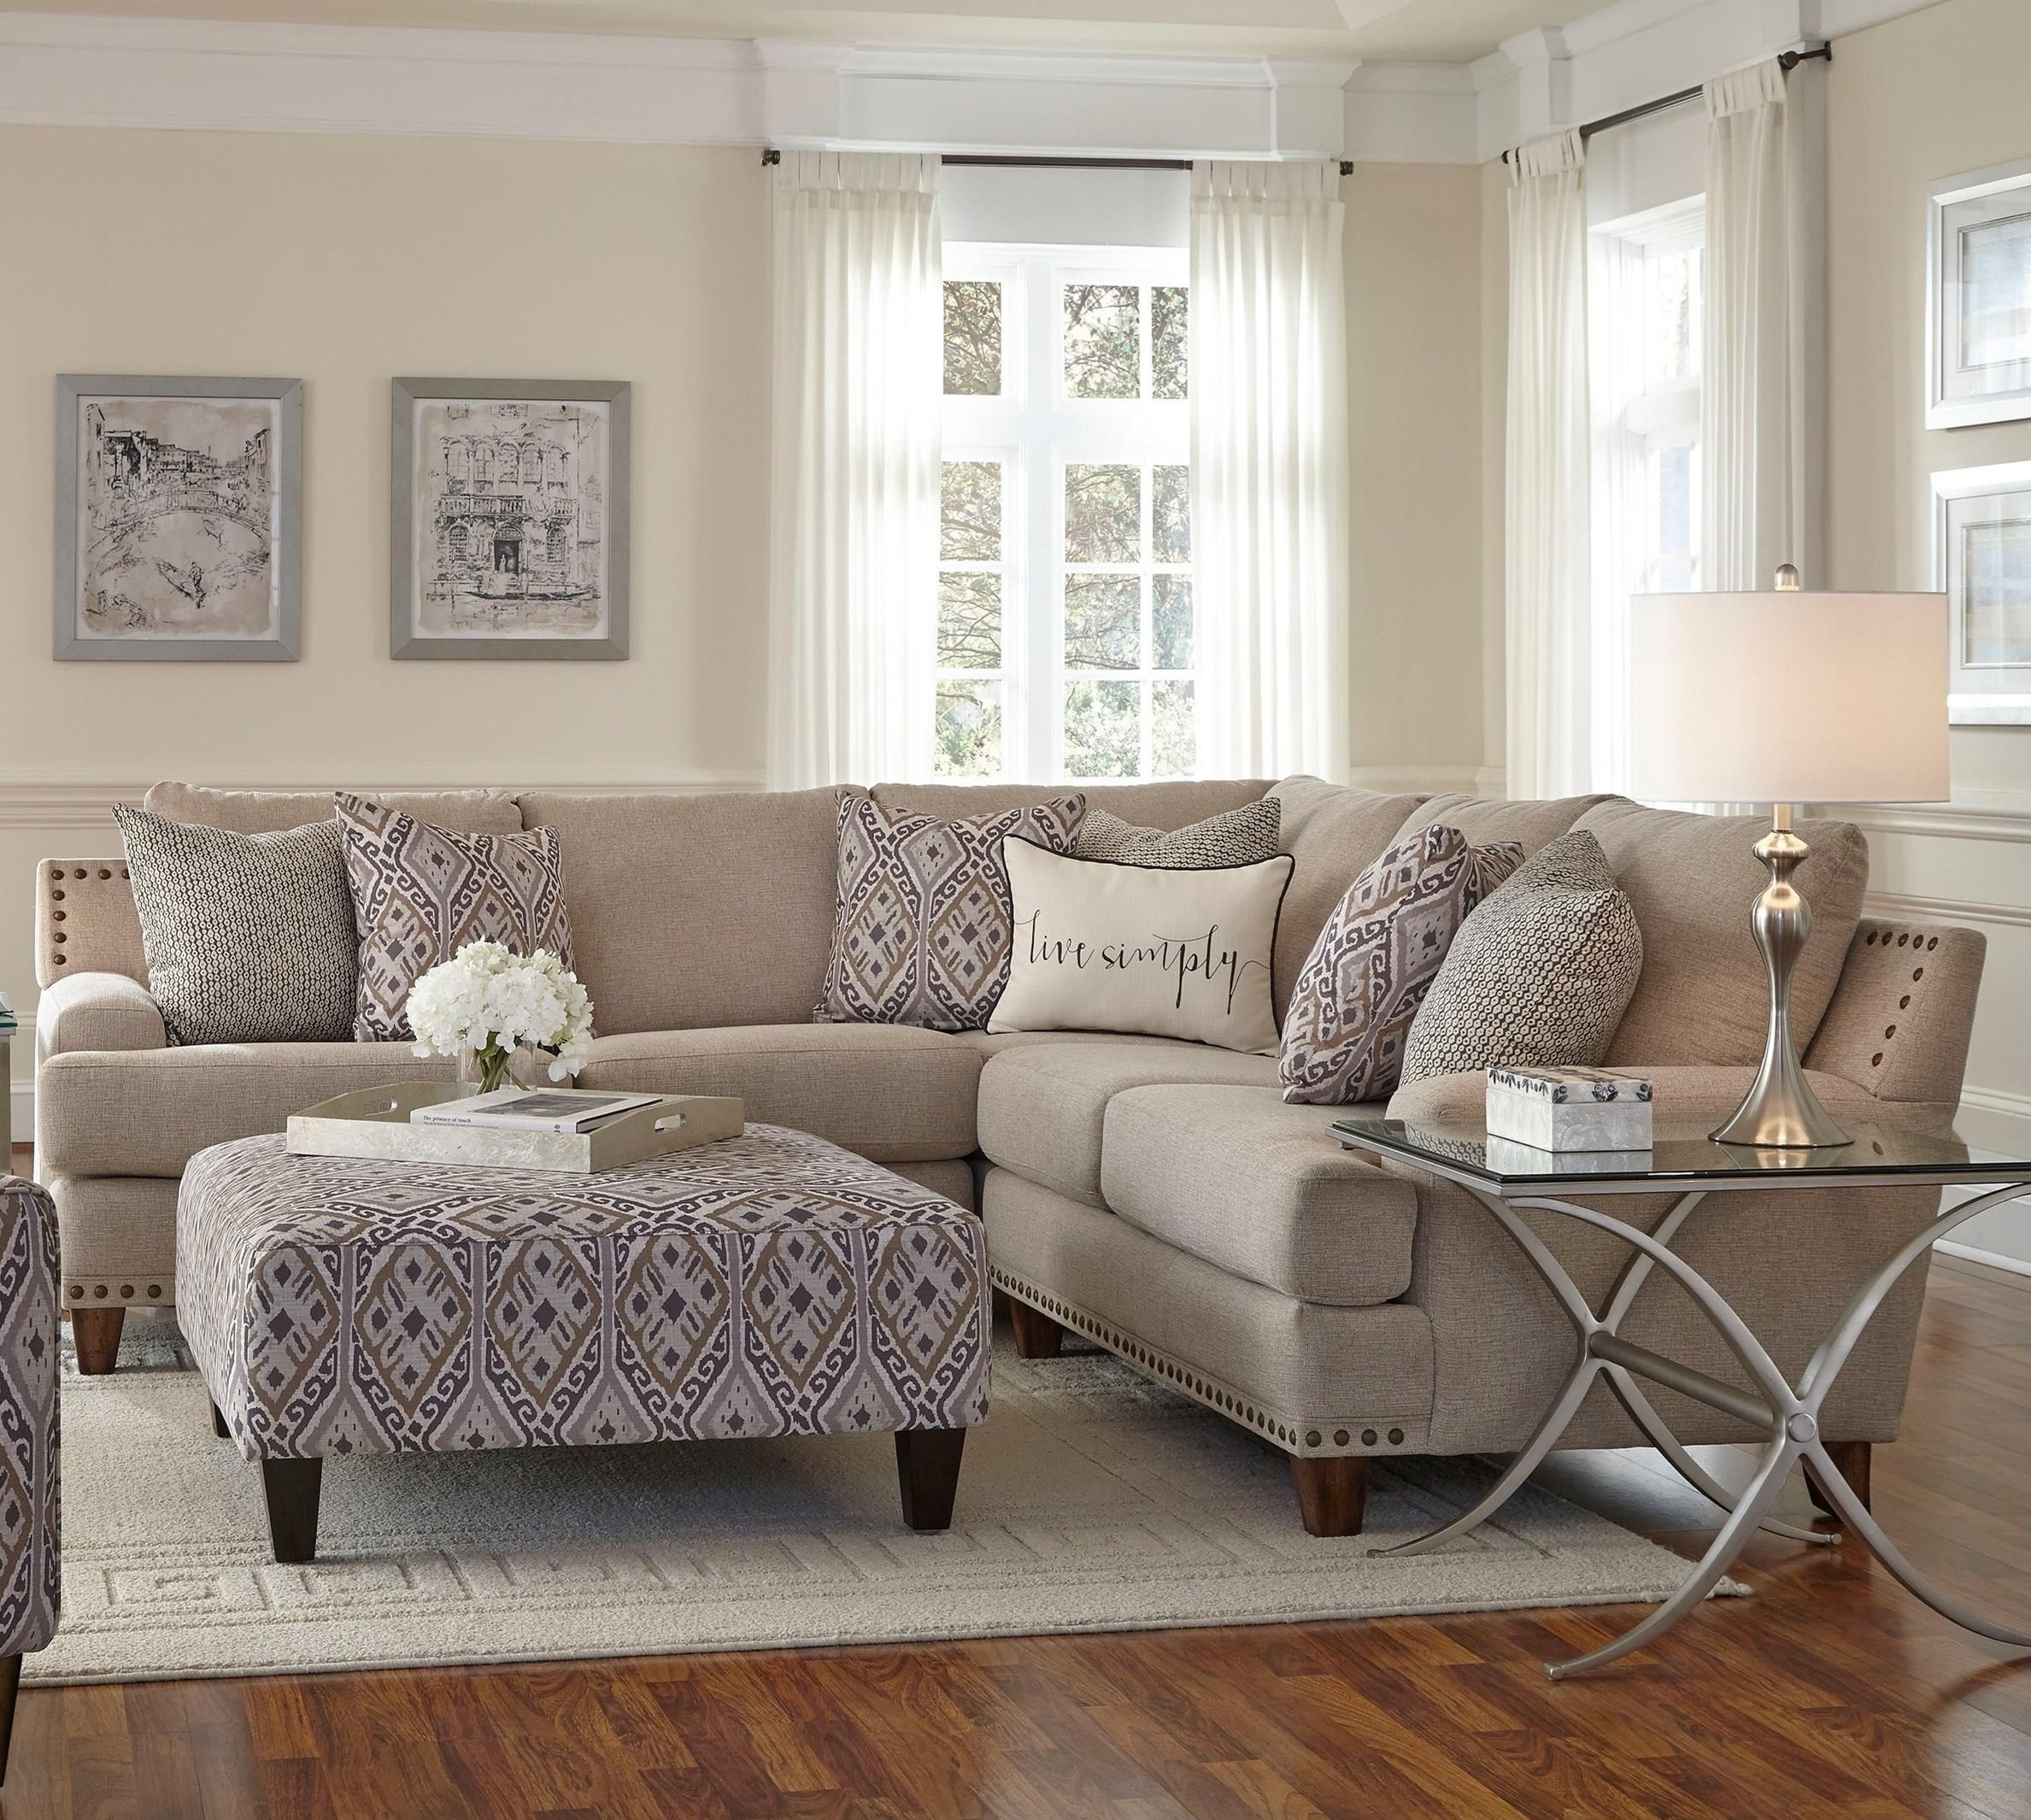 Franklin Julienne Sectional Sofa with Four Seats - Miskelly ...